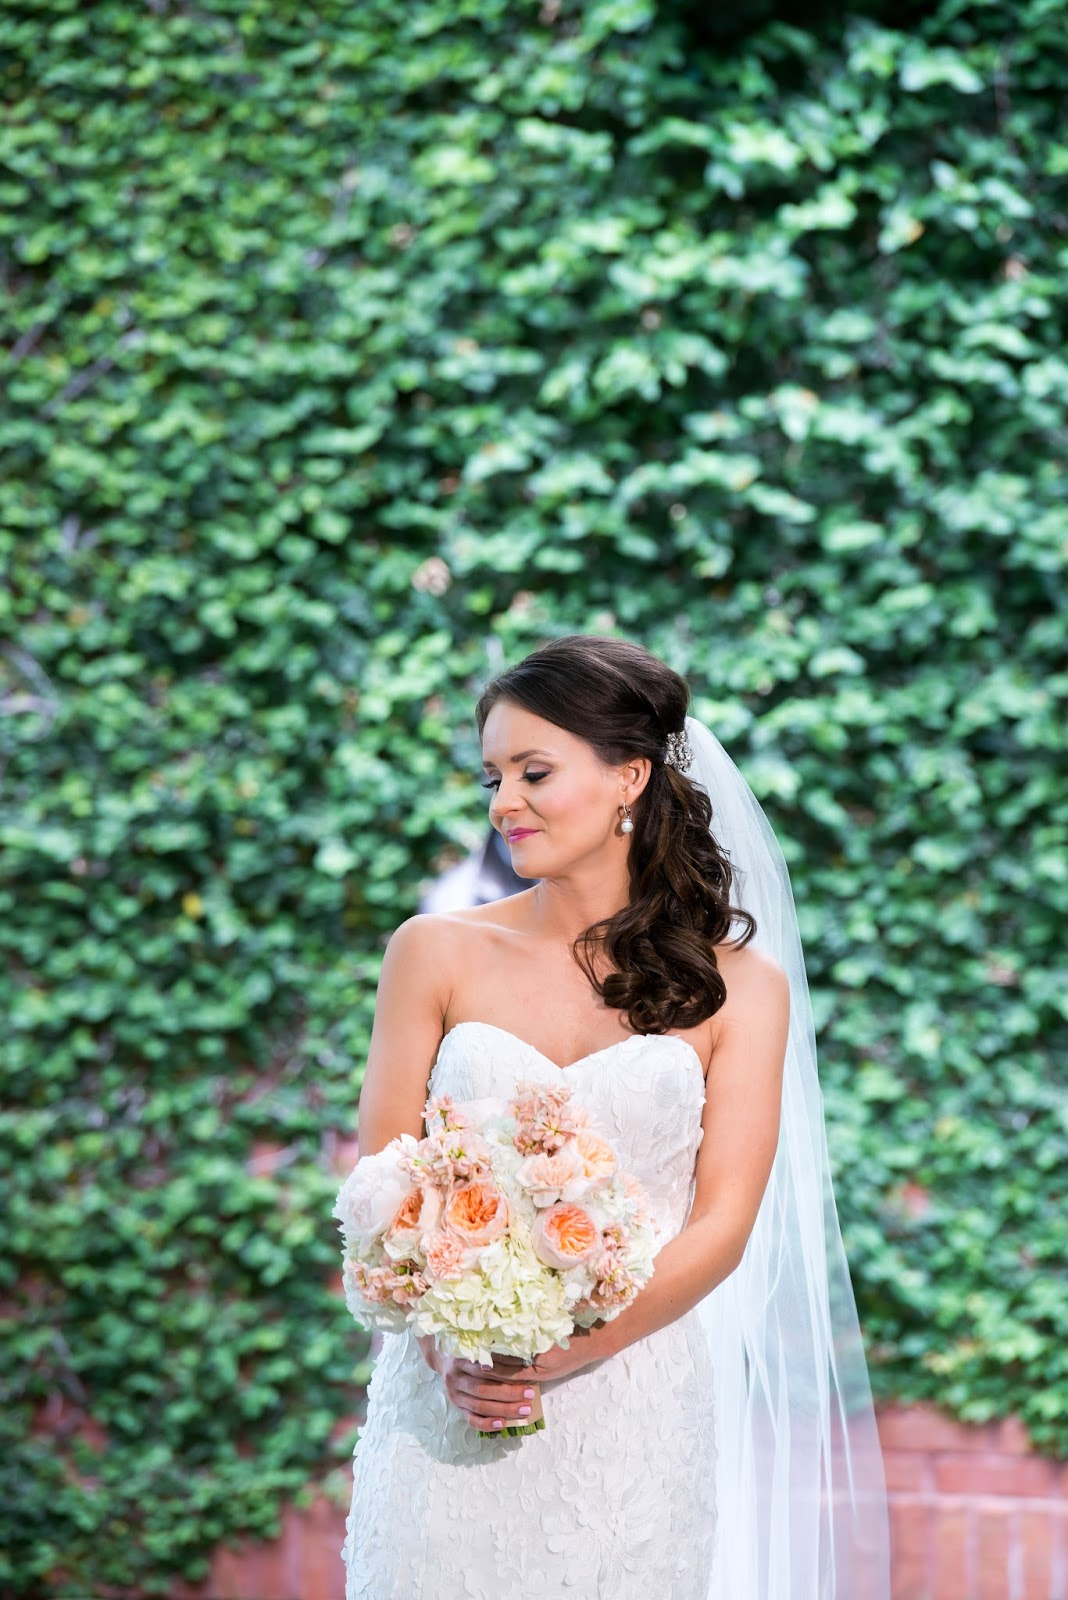 lis simone francesca wedding dress